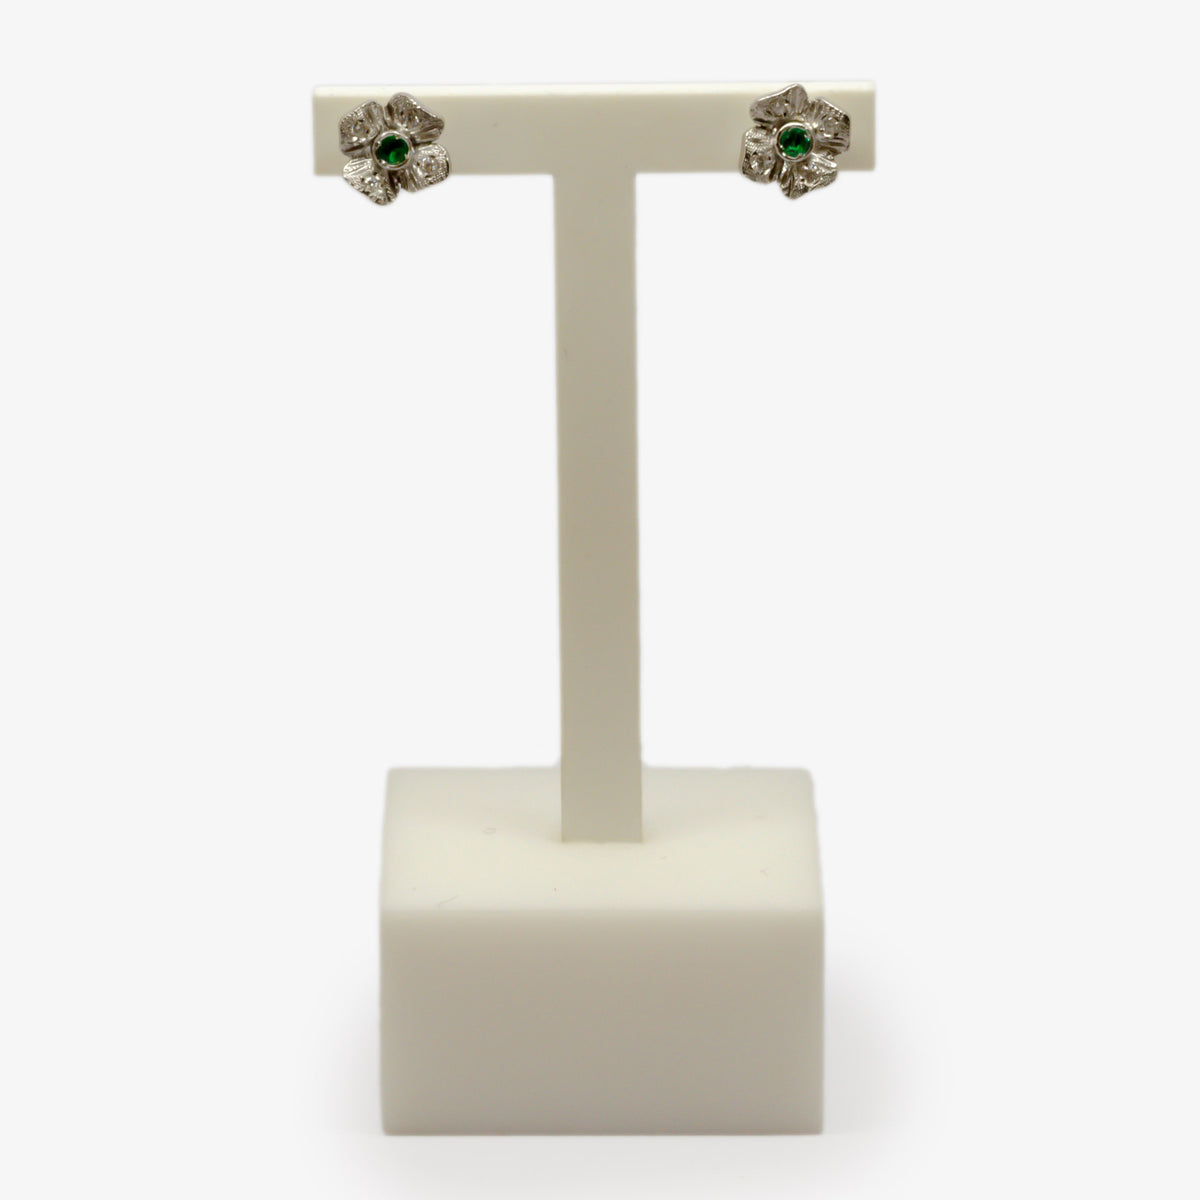 Emerald & Diamond Flower Stud Earrings